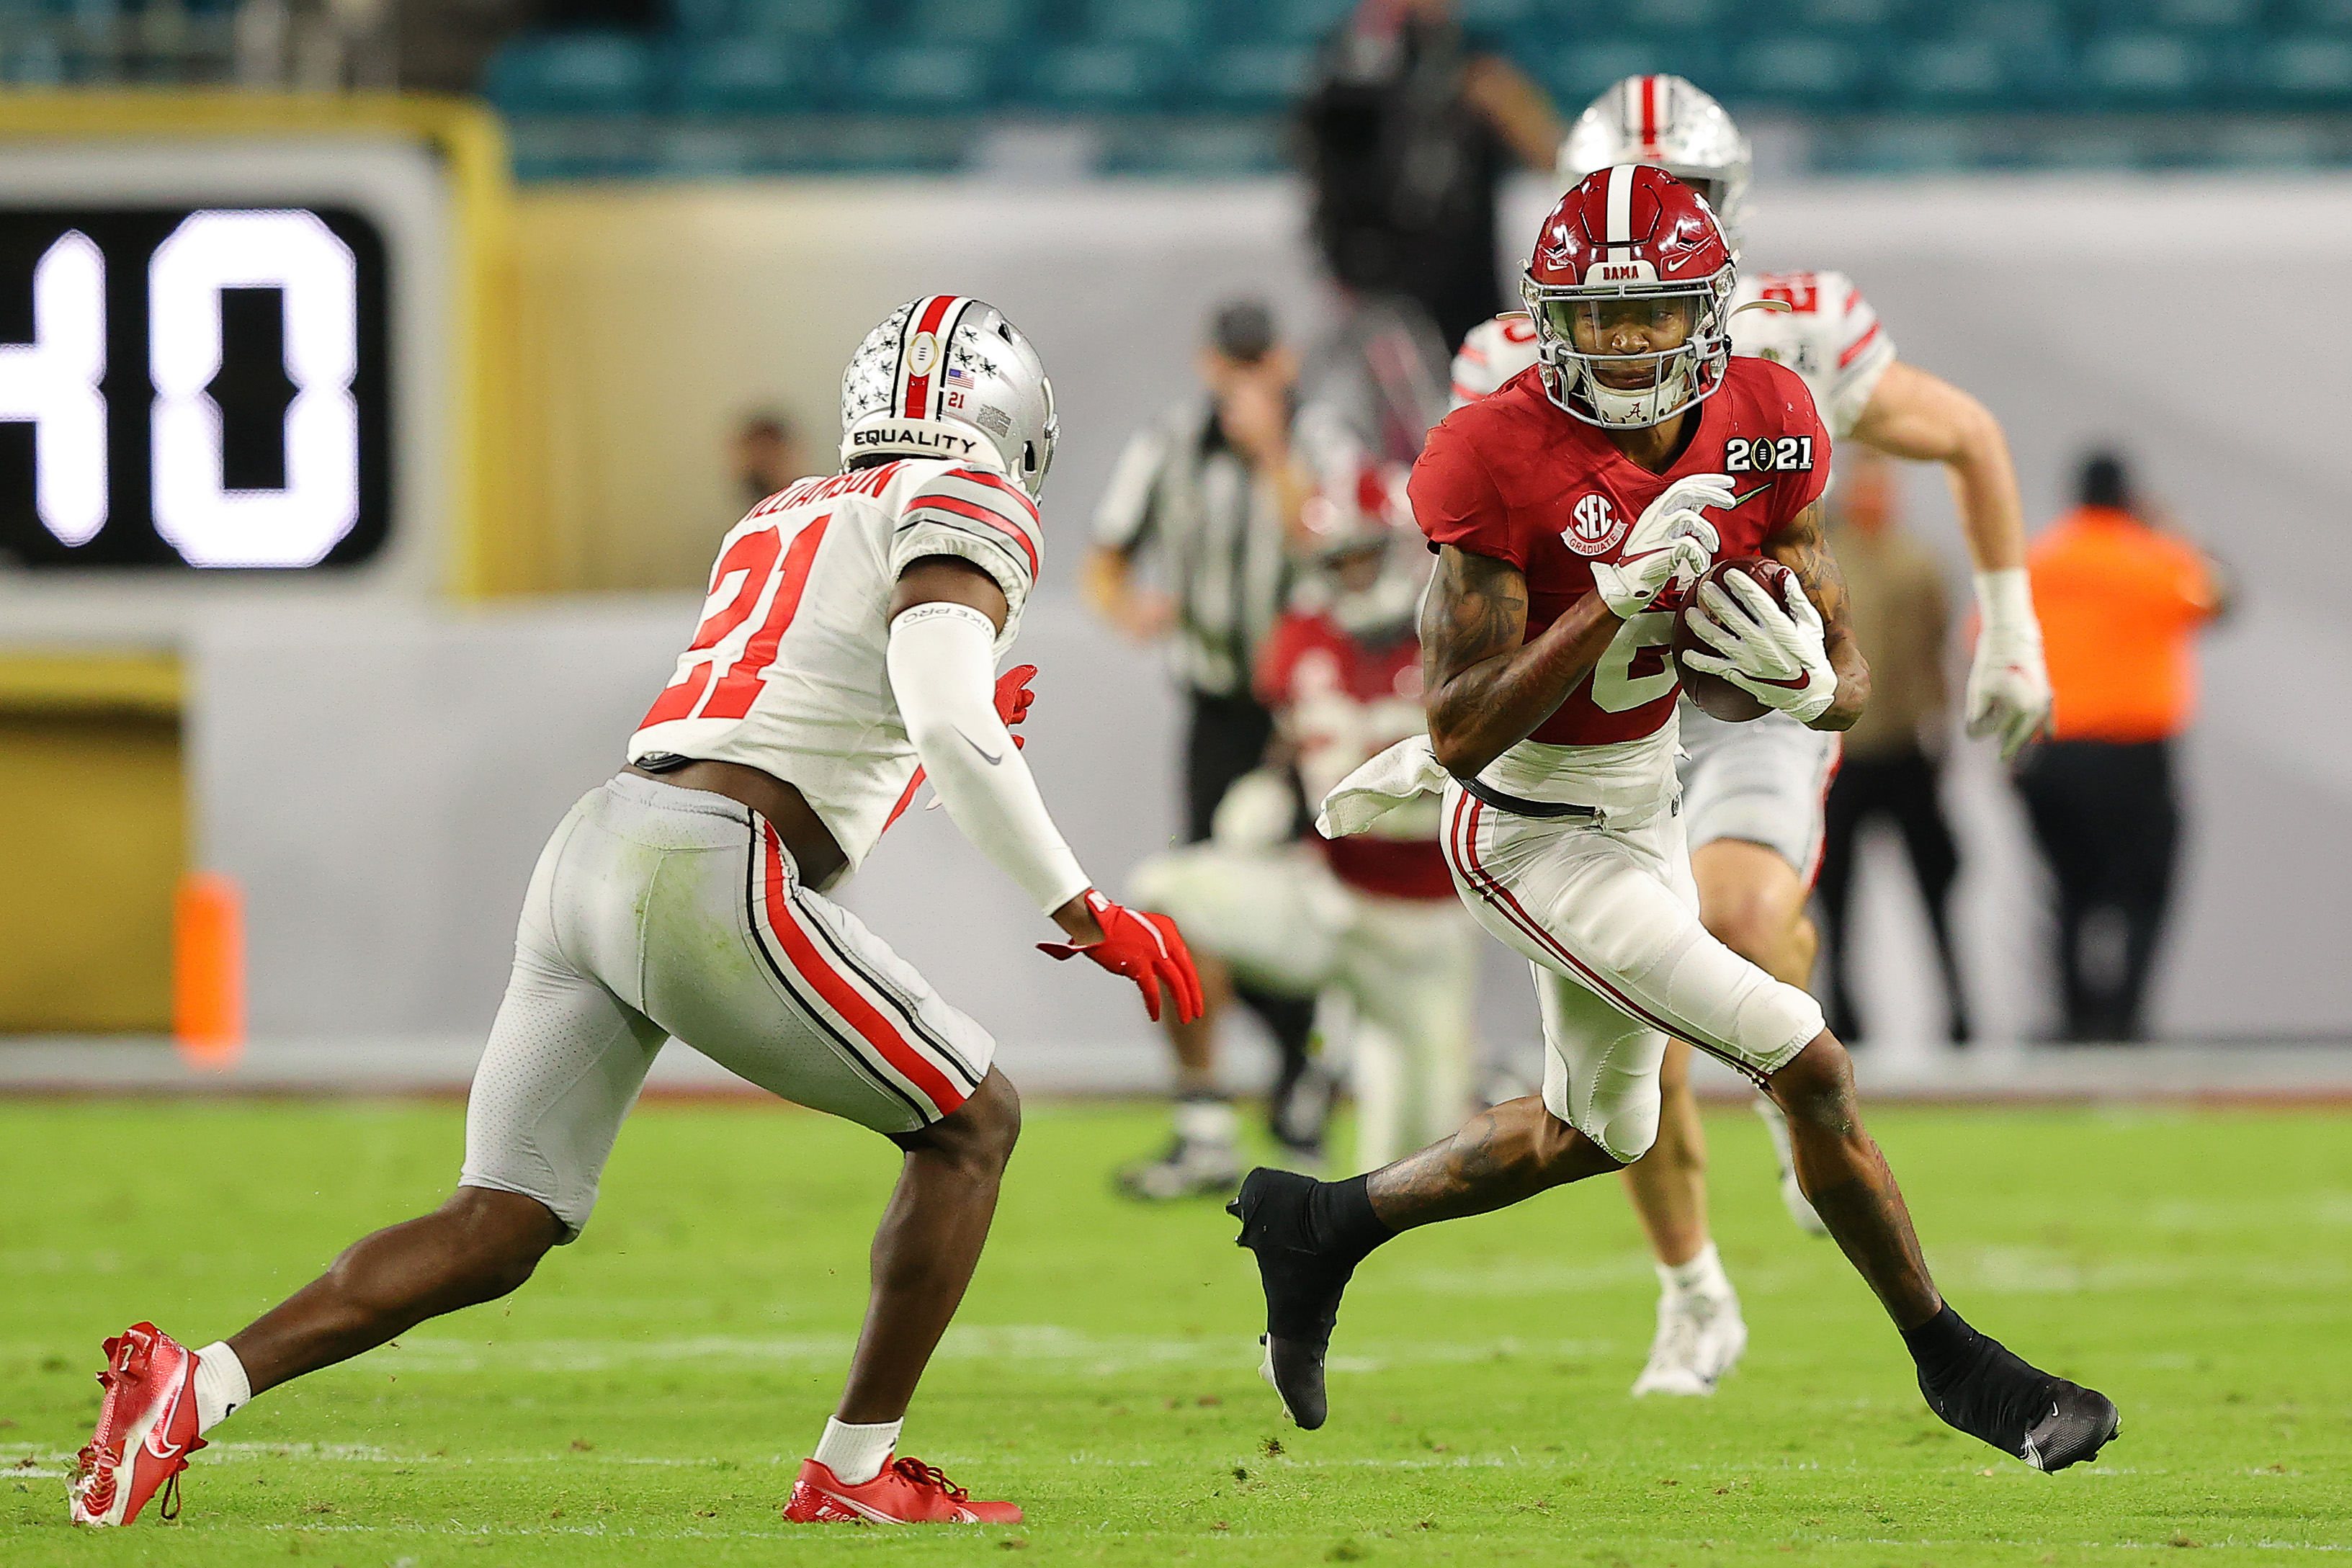 DeVonta Smith #6 of the Alabama Crimson Tide rushes ahead of Marcus Williamson #21 of the Ohio State Buckeyes during the second quarter of the College Football Playoff National Championship game at Hard Rock Stadium on January 11, 2021 in Miami Gardens, Florida.